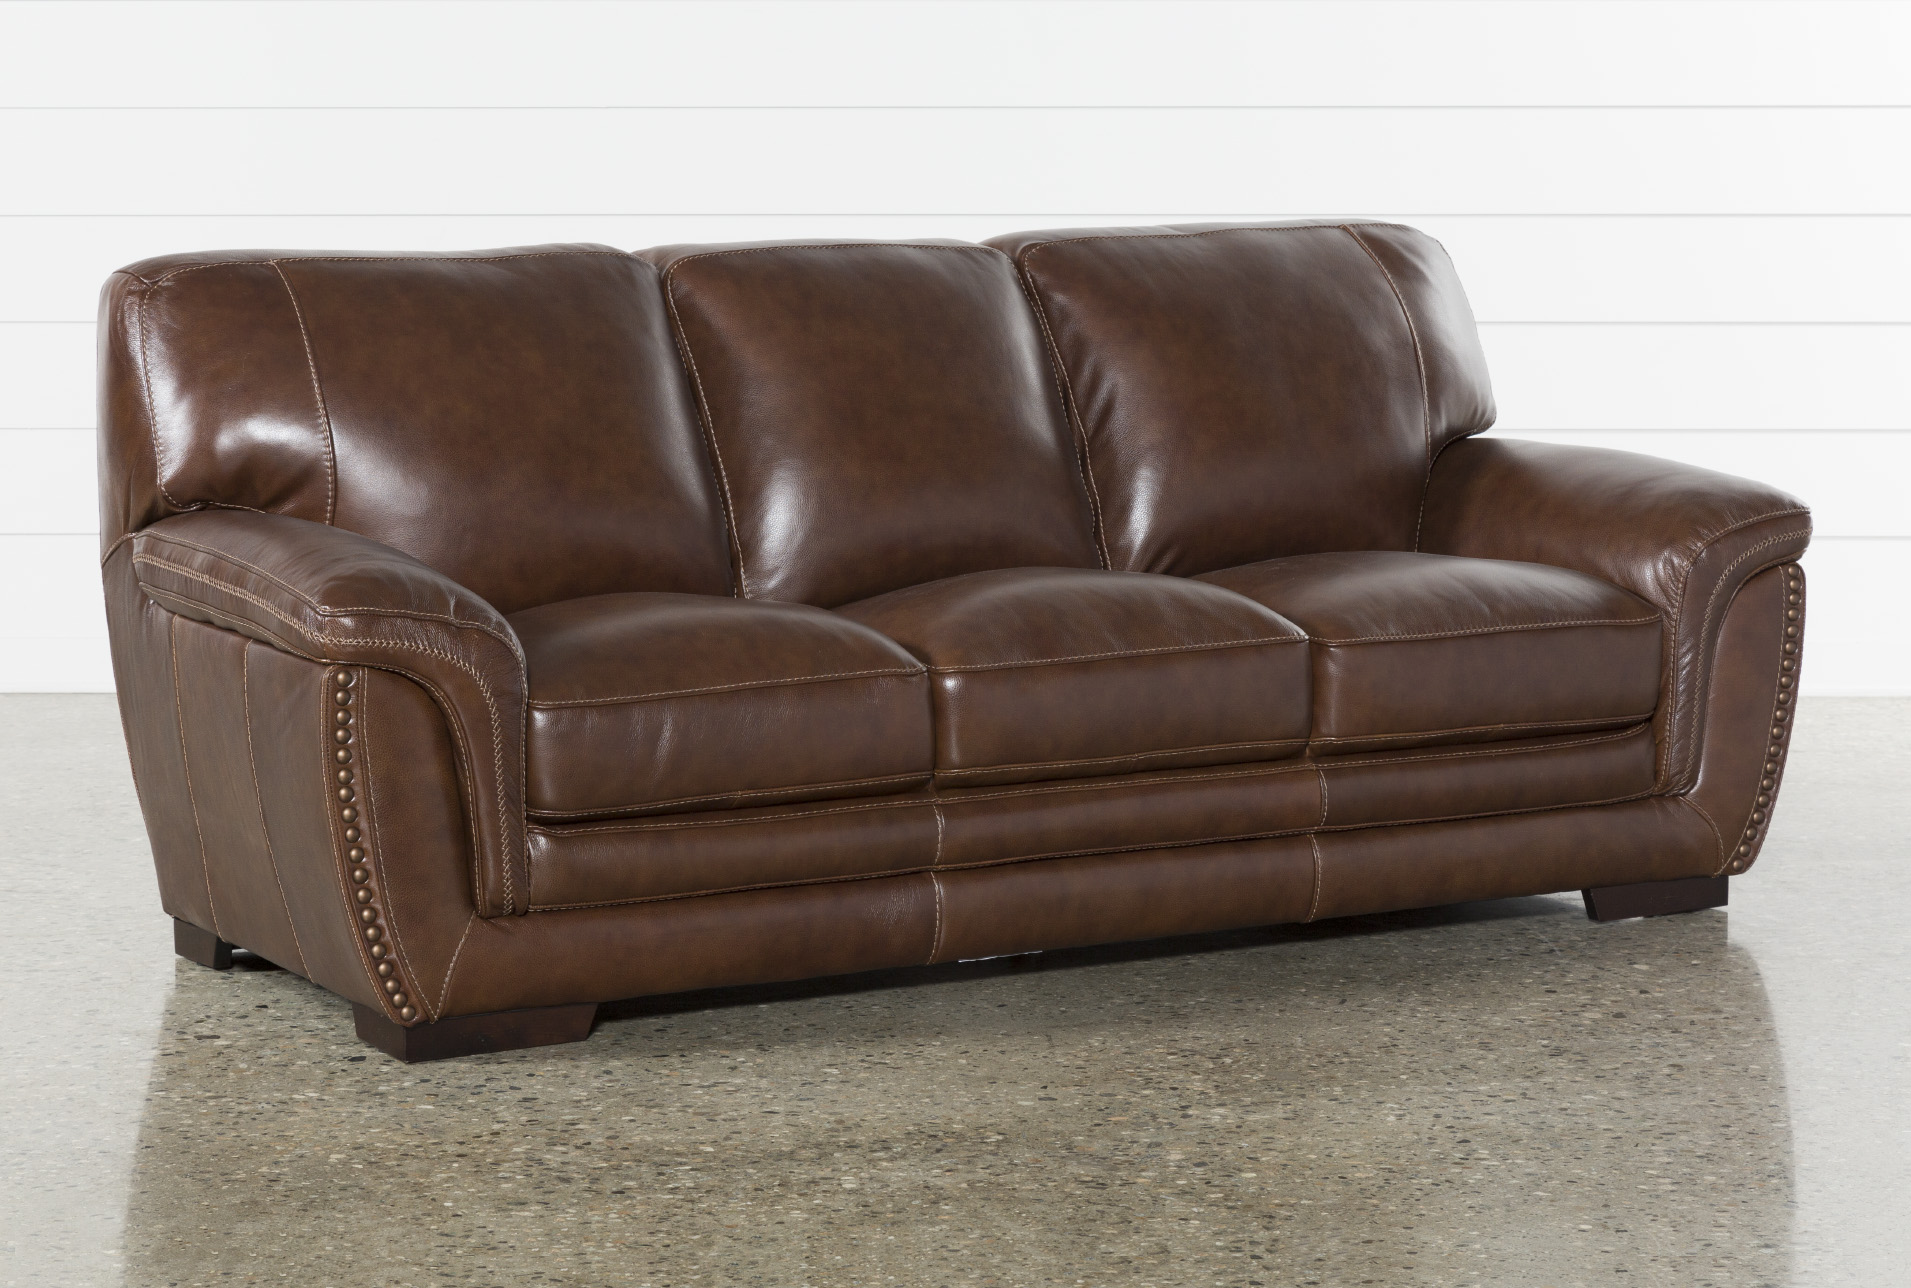 Brown 100% Leather Sofas & Couches - Free Assembly with Delivery